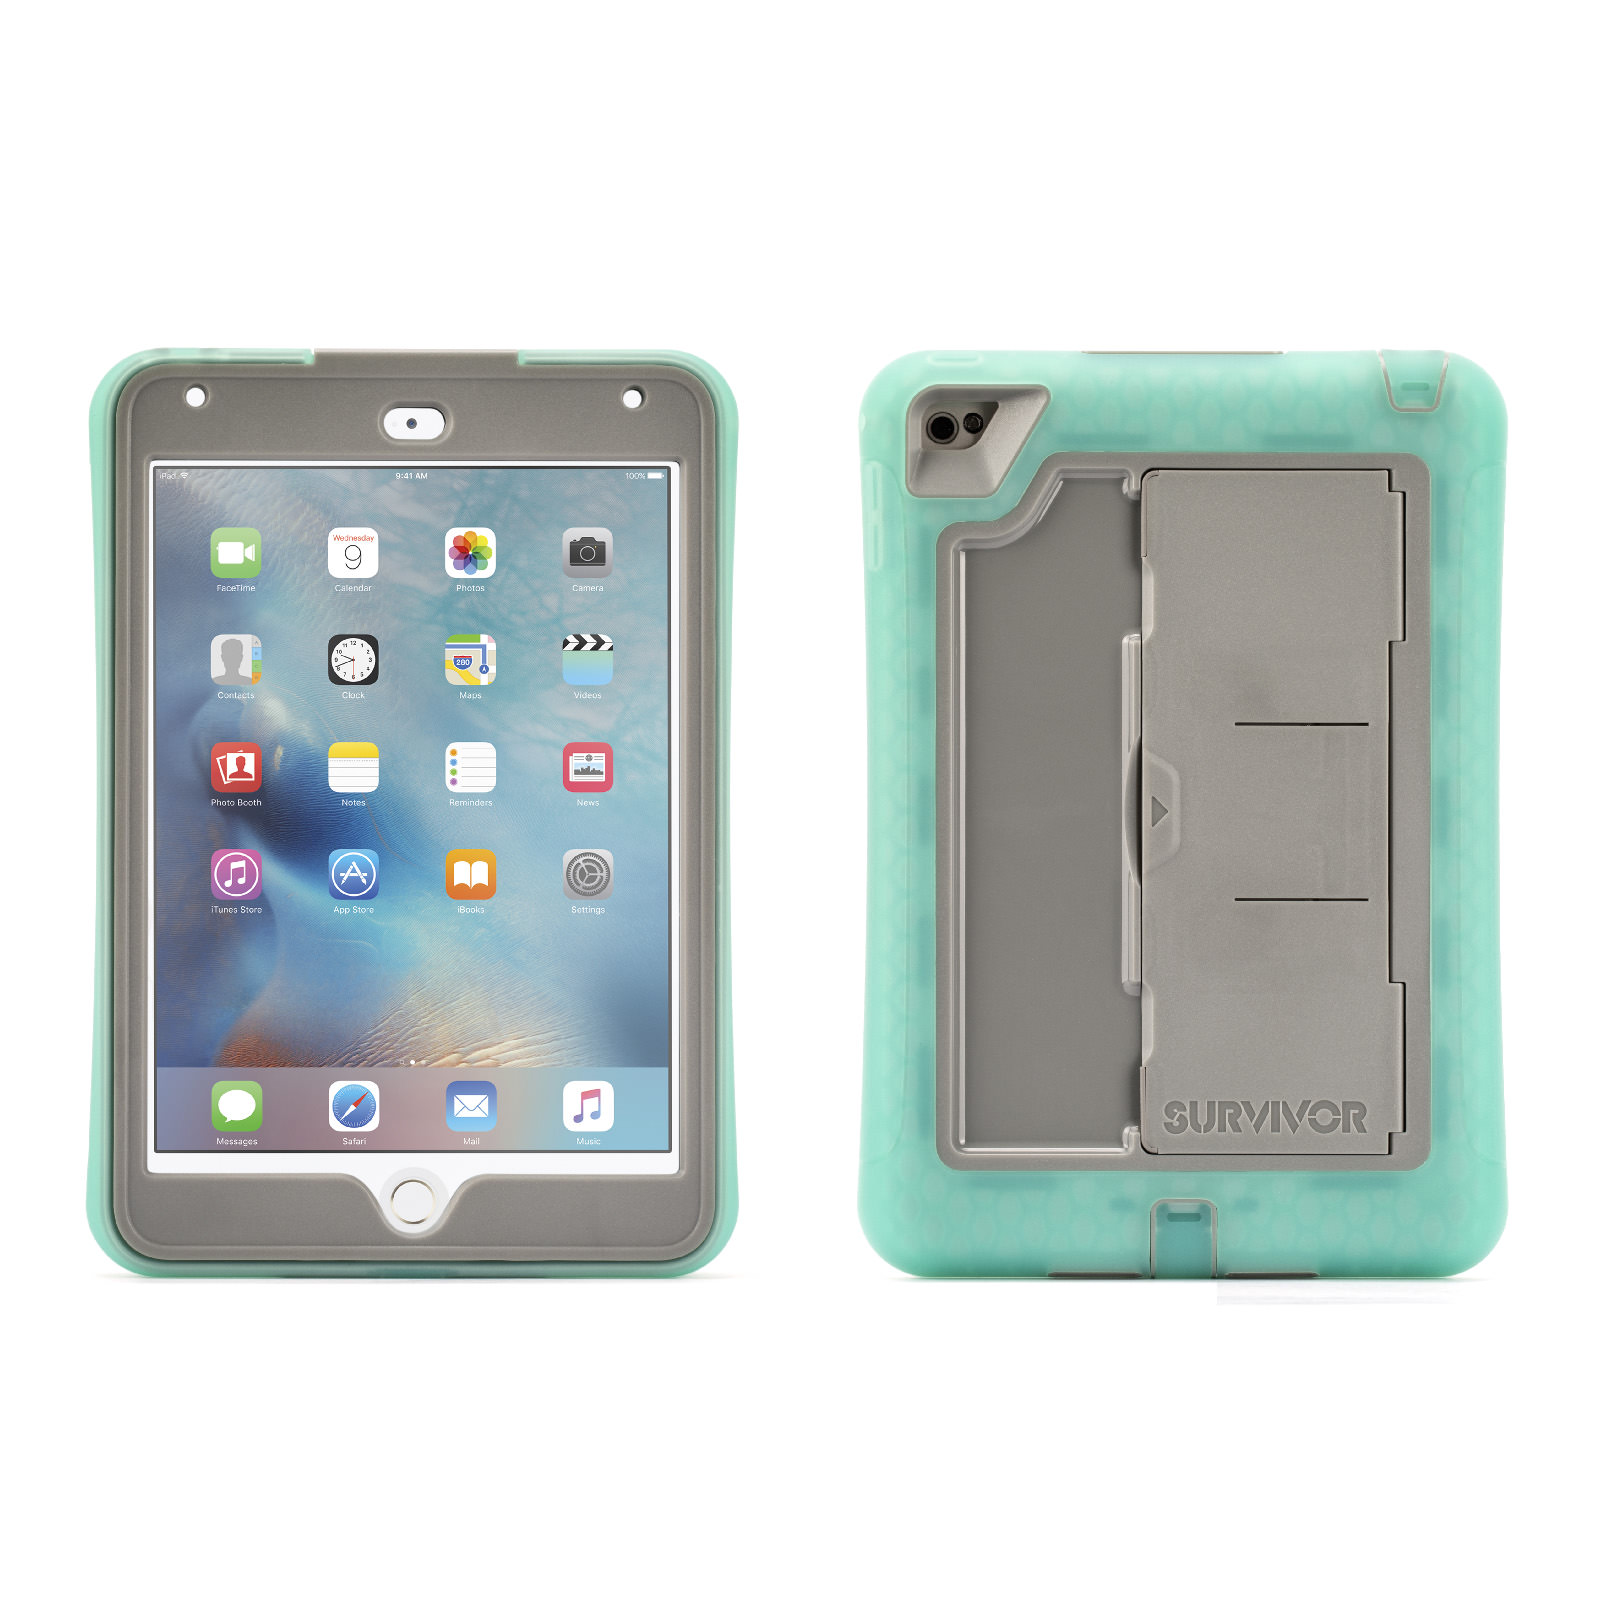 survivor ipad mini case instructions